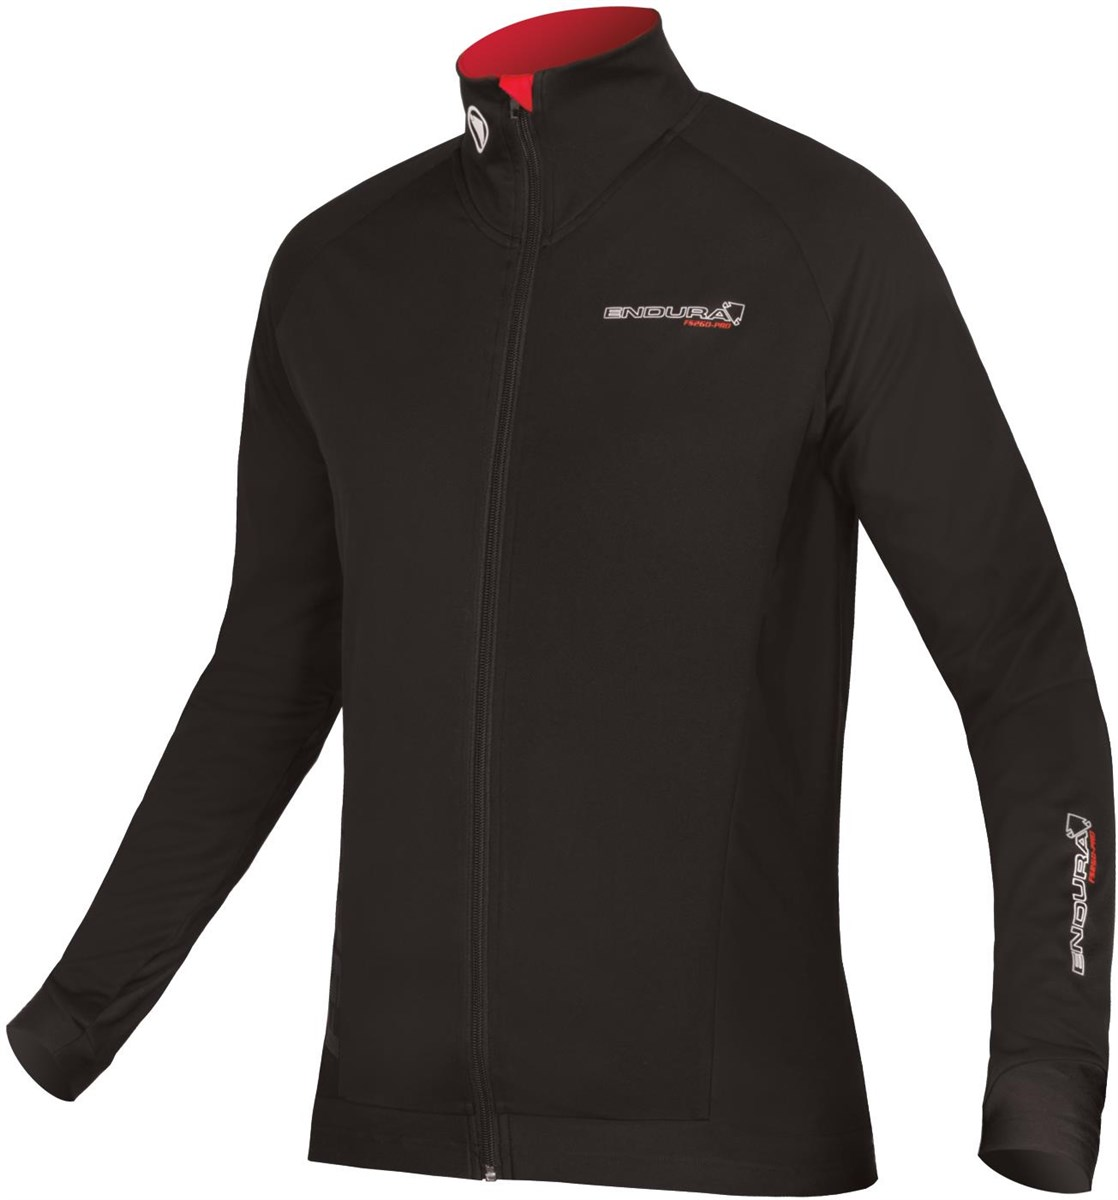 Endura FS260 Pro Jetstream Long Sleeve Cycling Jersey SS17